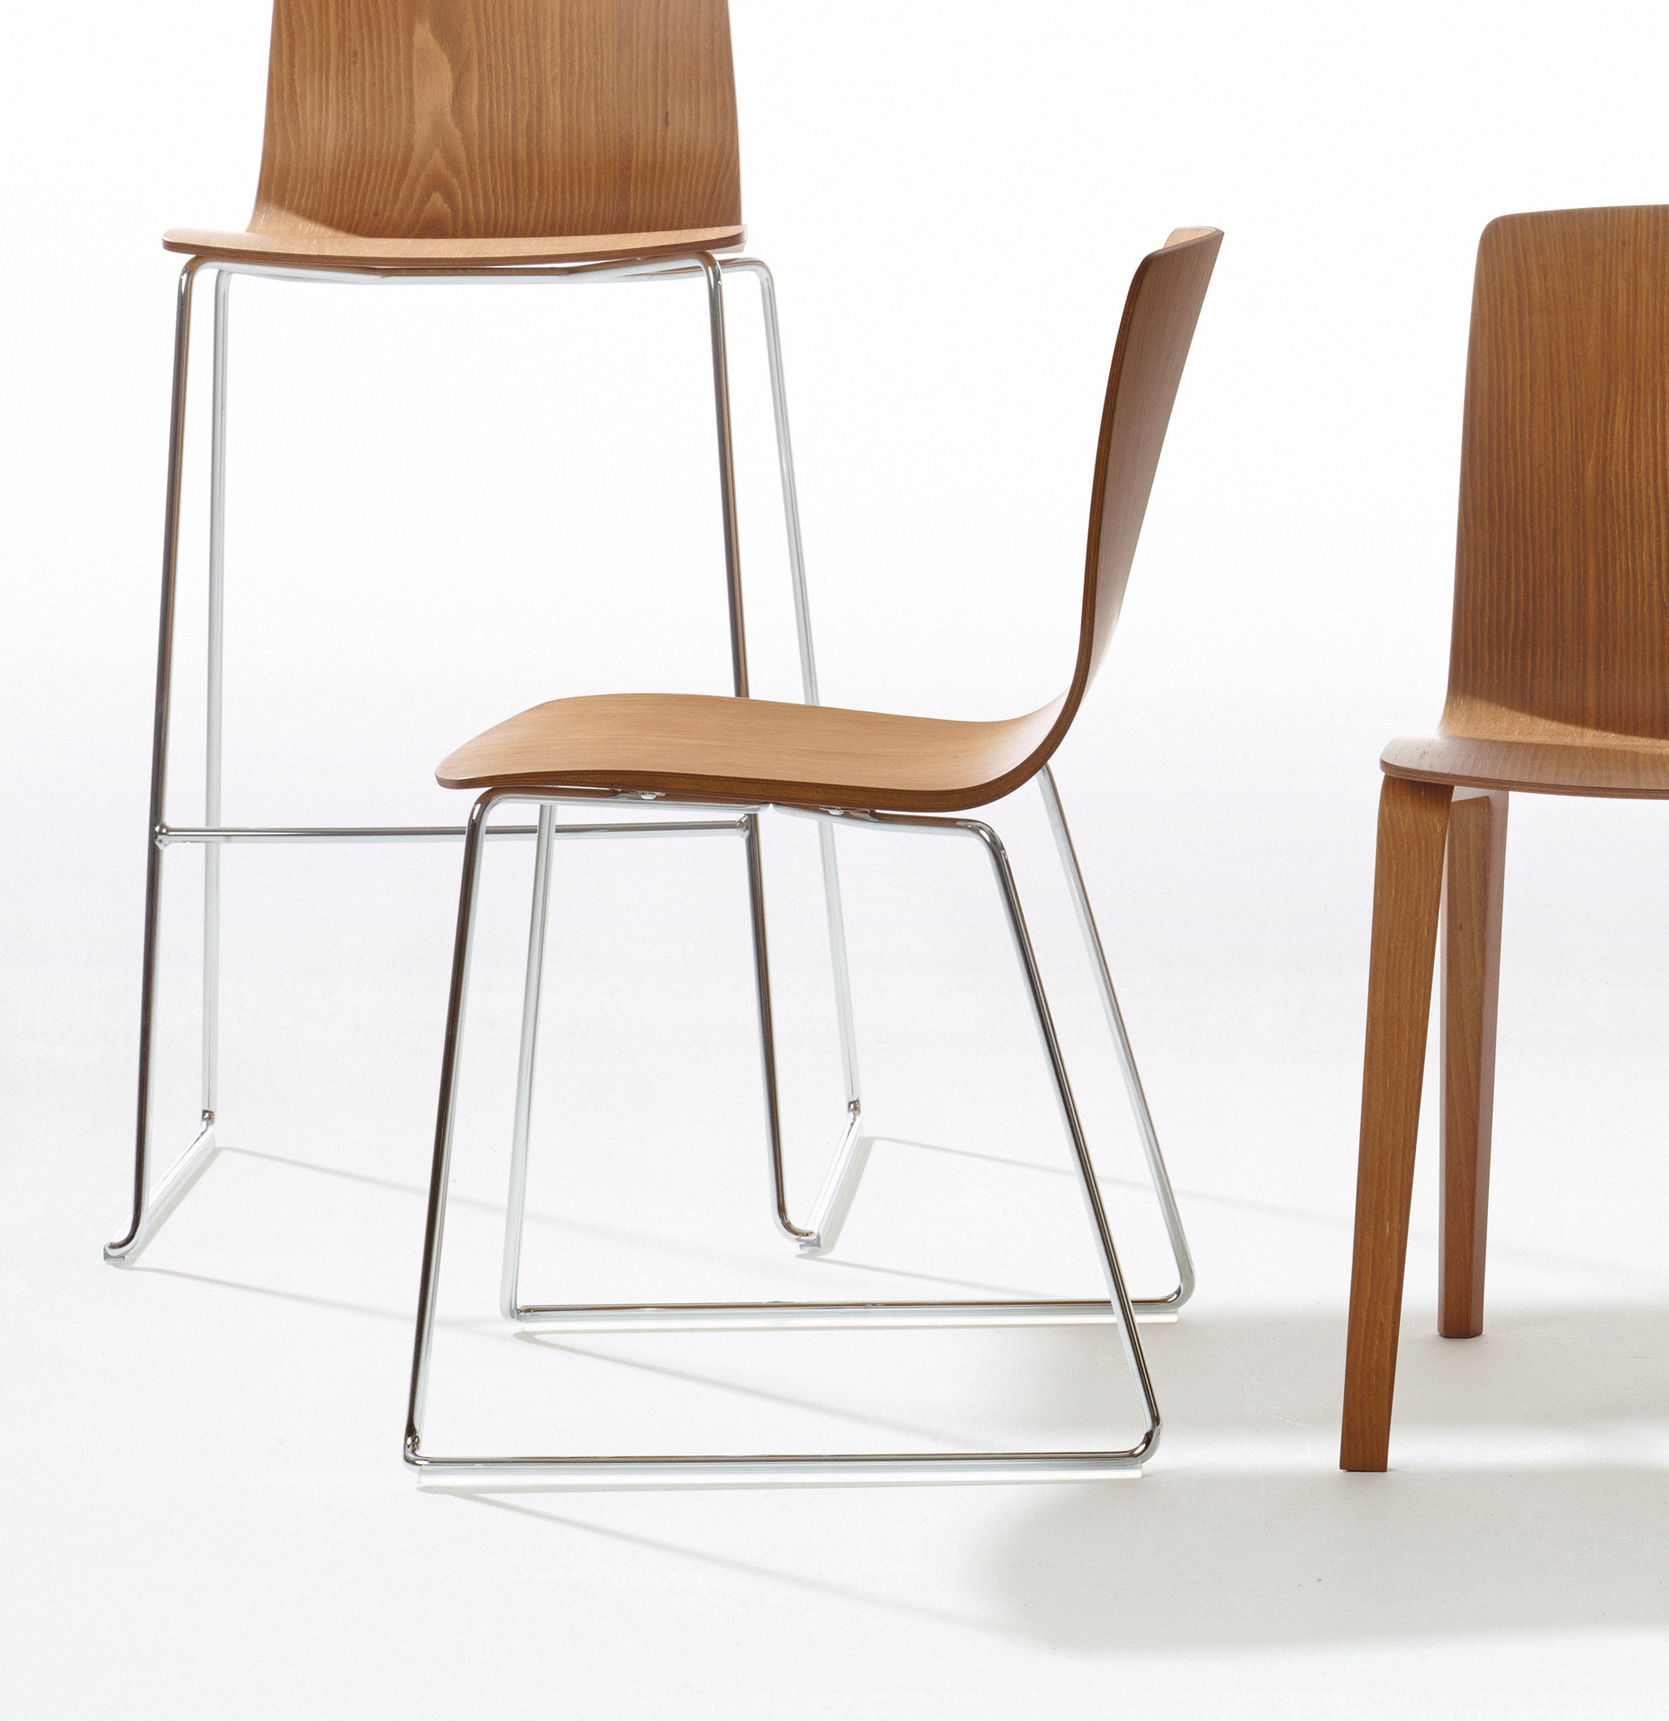 Charles Ray Eames Eames And Plywood On Pinterest